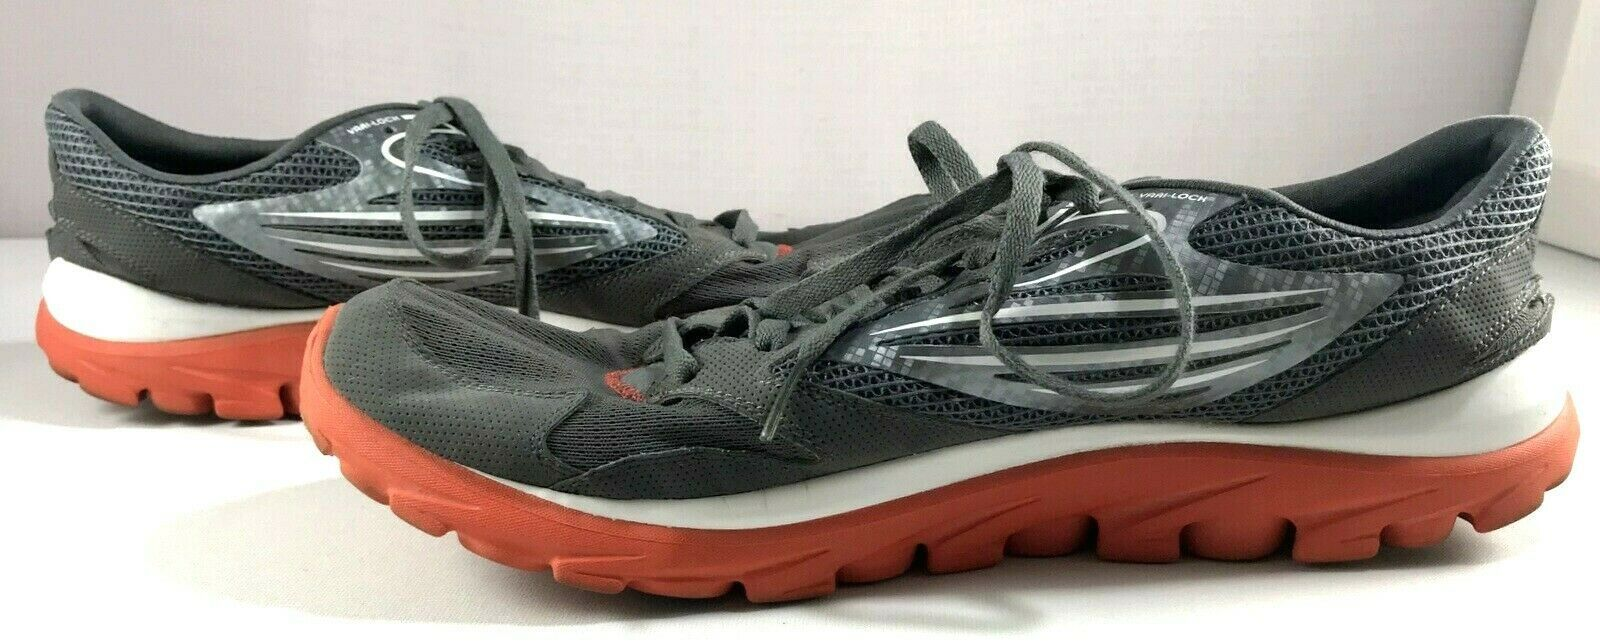 Skechers Go Run Shoes Mens Size 13 Dark Gray Lace Up Sneakers